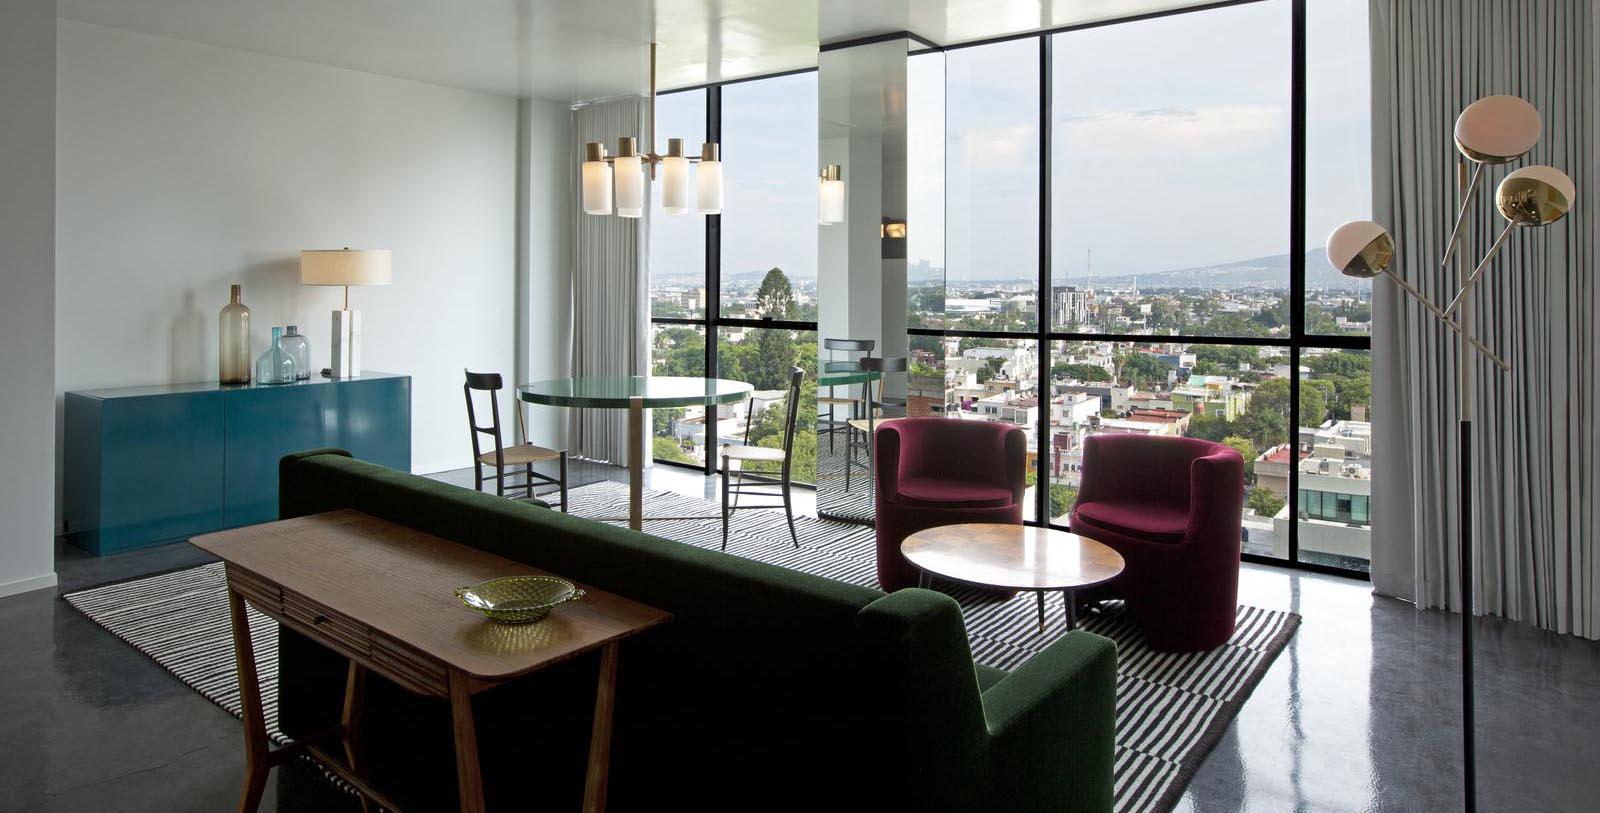 Image of hotel suite seating area Casa Habita, 1938, Member of Historic Hotels Worldwide, in Guadalajara, Mexico, Overview